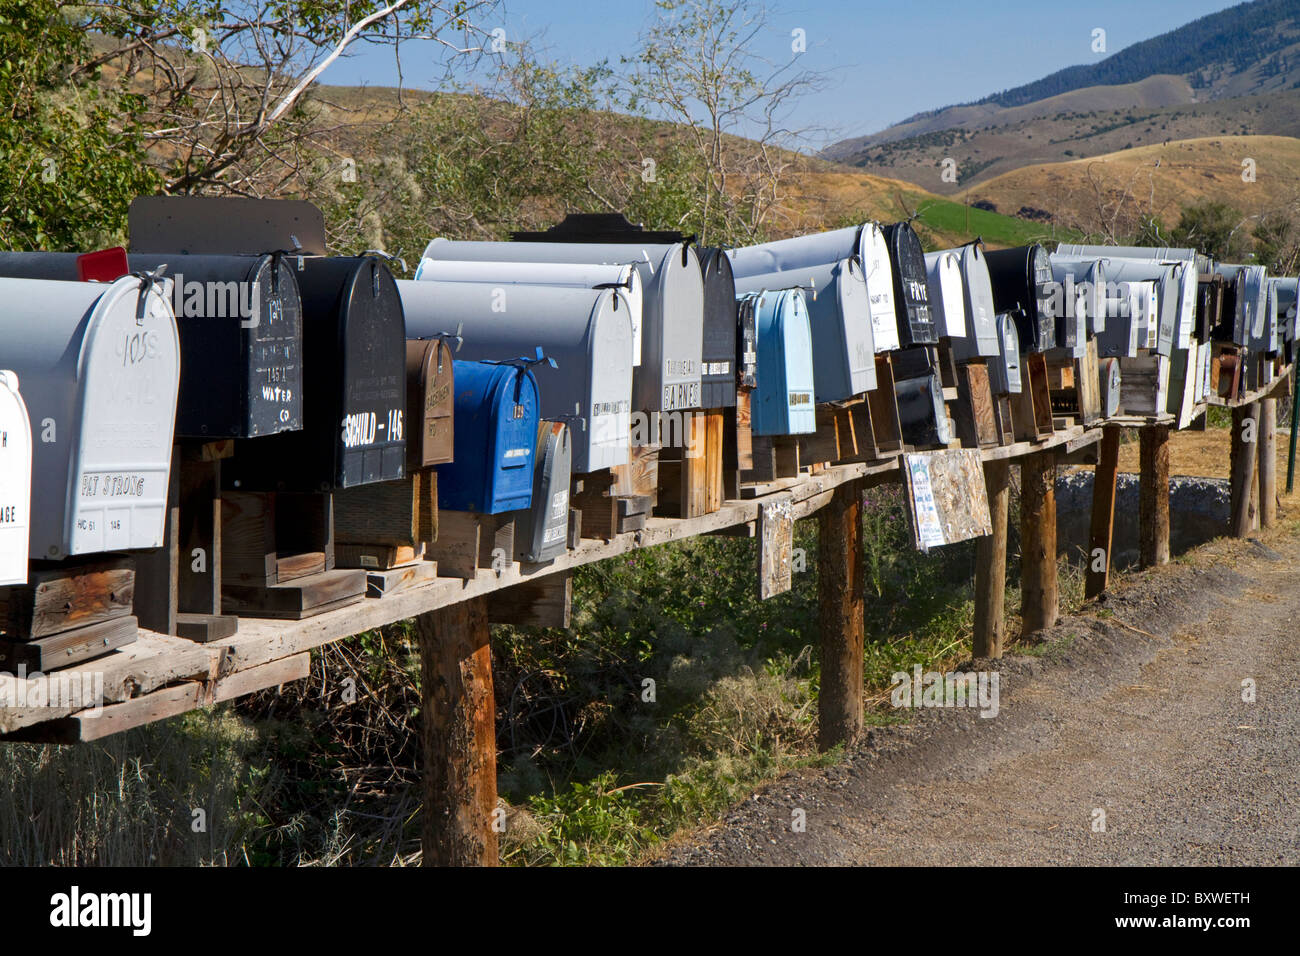 Mailboxes lined up for the delivery of mail in a rural area near Challis, Idaho, USA. - Stock Image